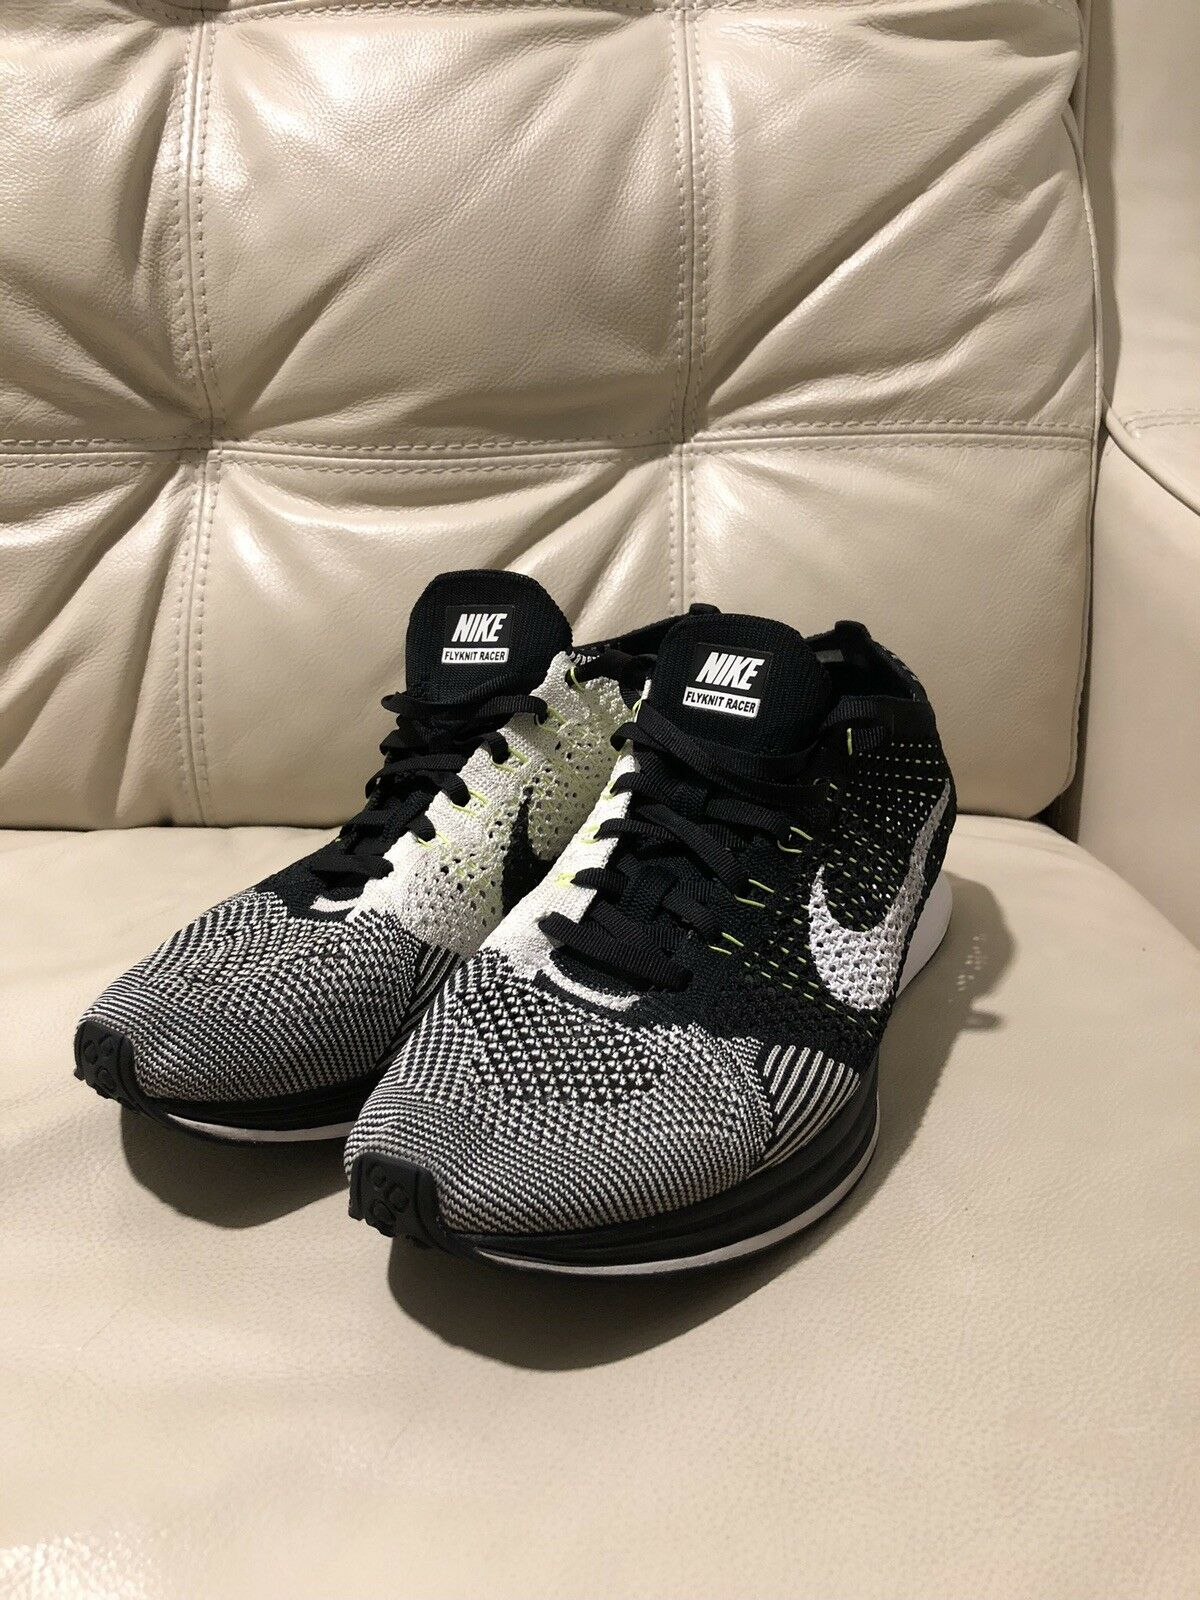 89b439d655 Nike Flyknit Racer BRAND NEW Size 10.5 Mens US, White Black Volt colorway